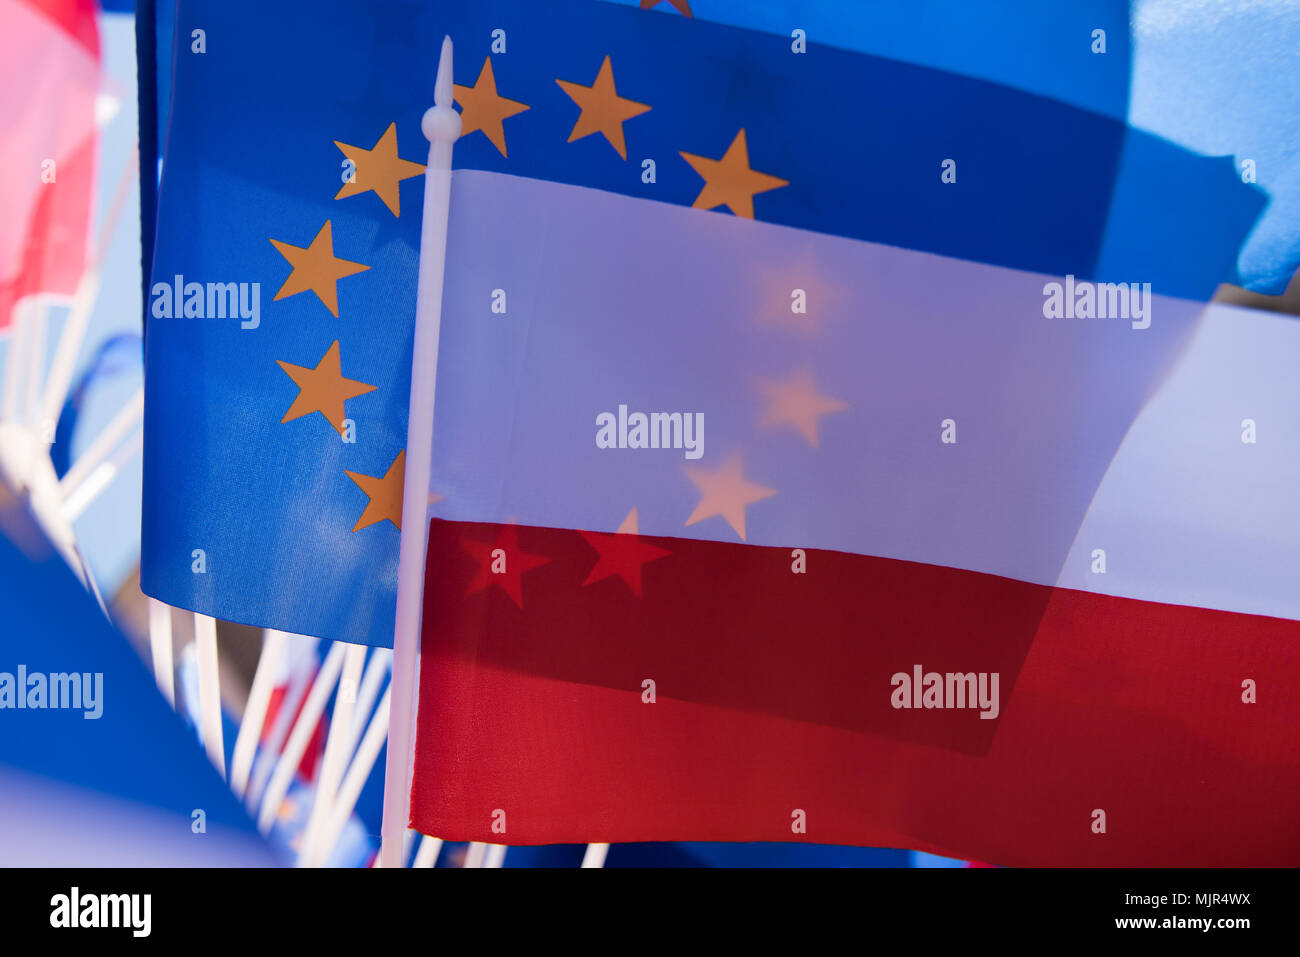 Krakow, Poland, 6 Mar 2018. Polish and European Union flags are seen during the Festival of Europe, ahead of Europe's day in Krakow. Credit: SOPA Images Limited/Alamy Live News - Stock Image